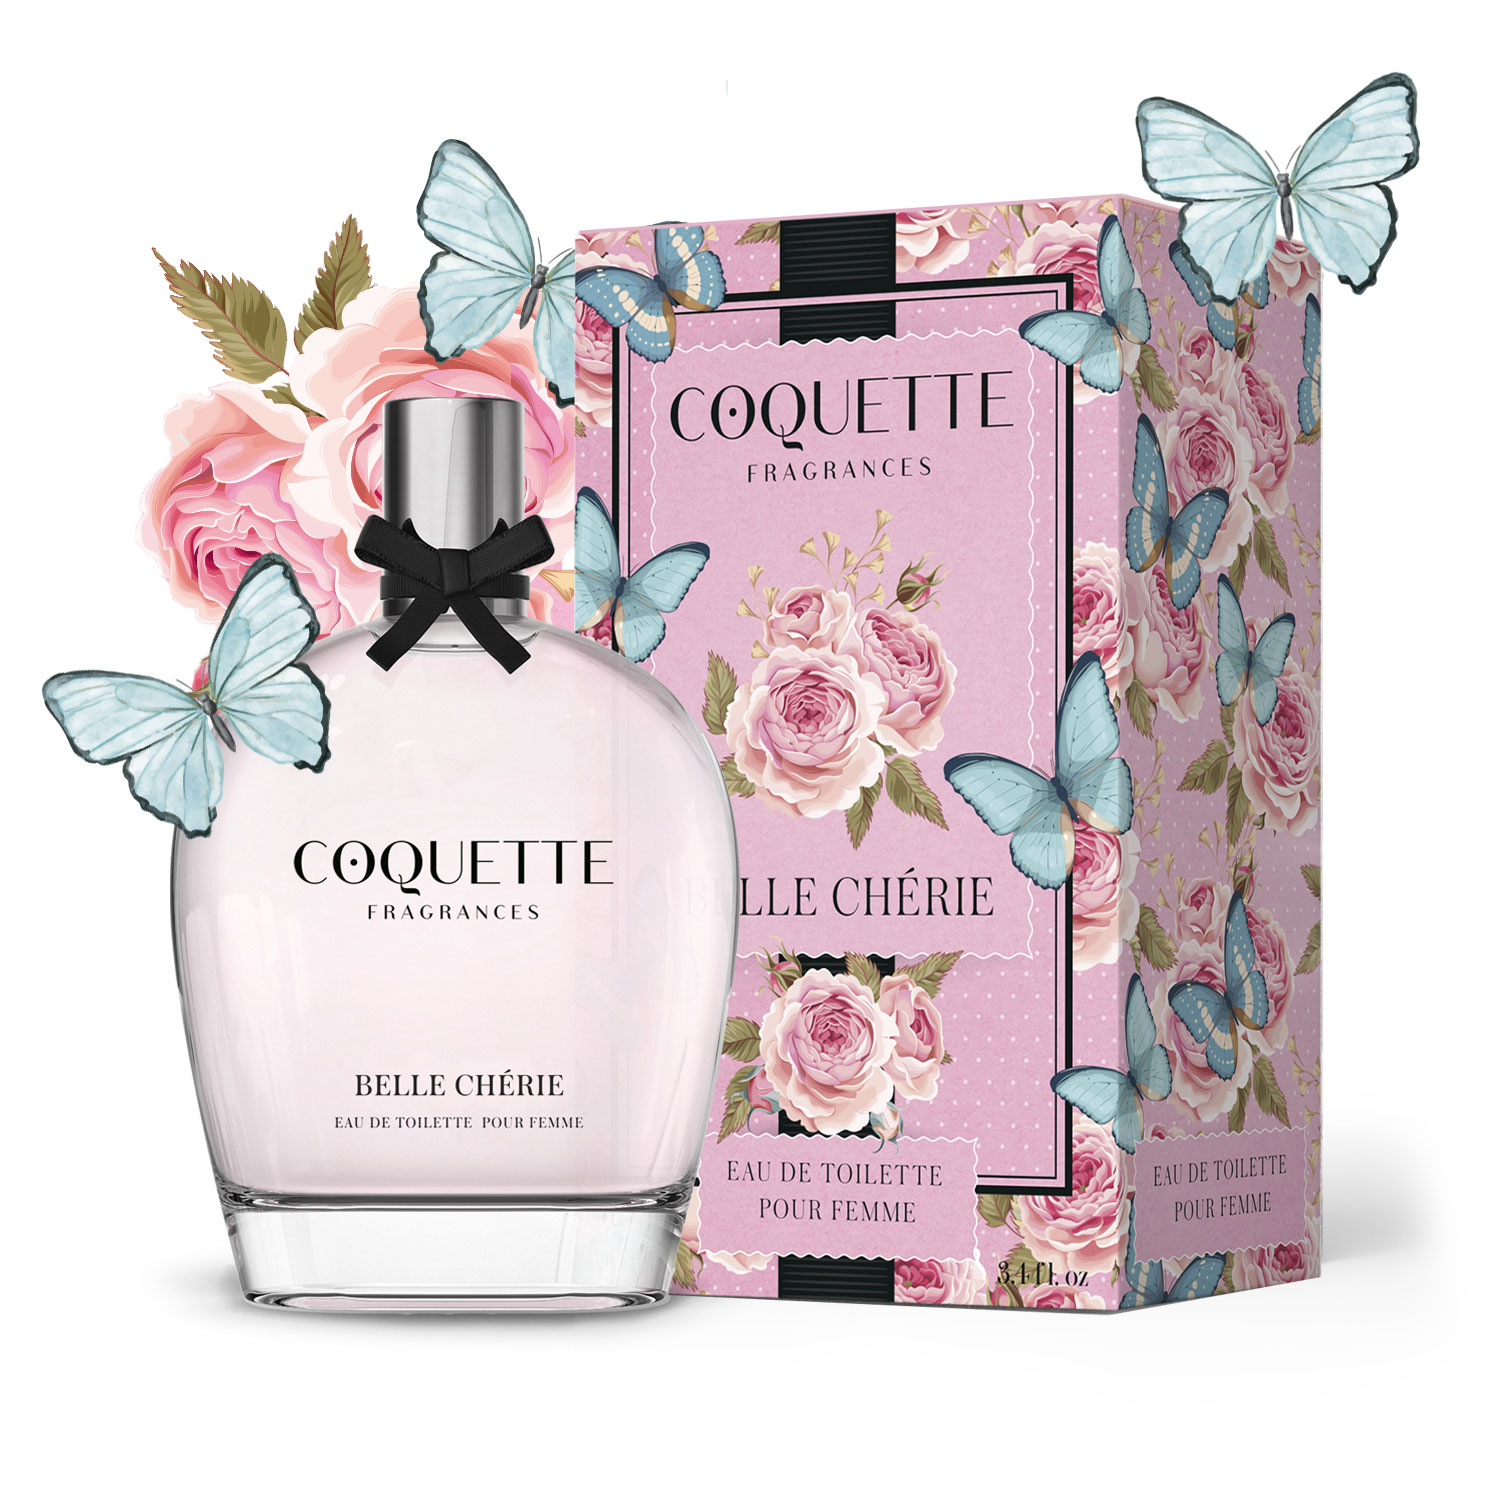 Coquette-EDT-Fragrances-Belle-Cherie-Magasalfa